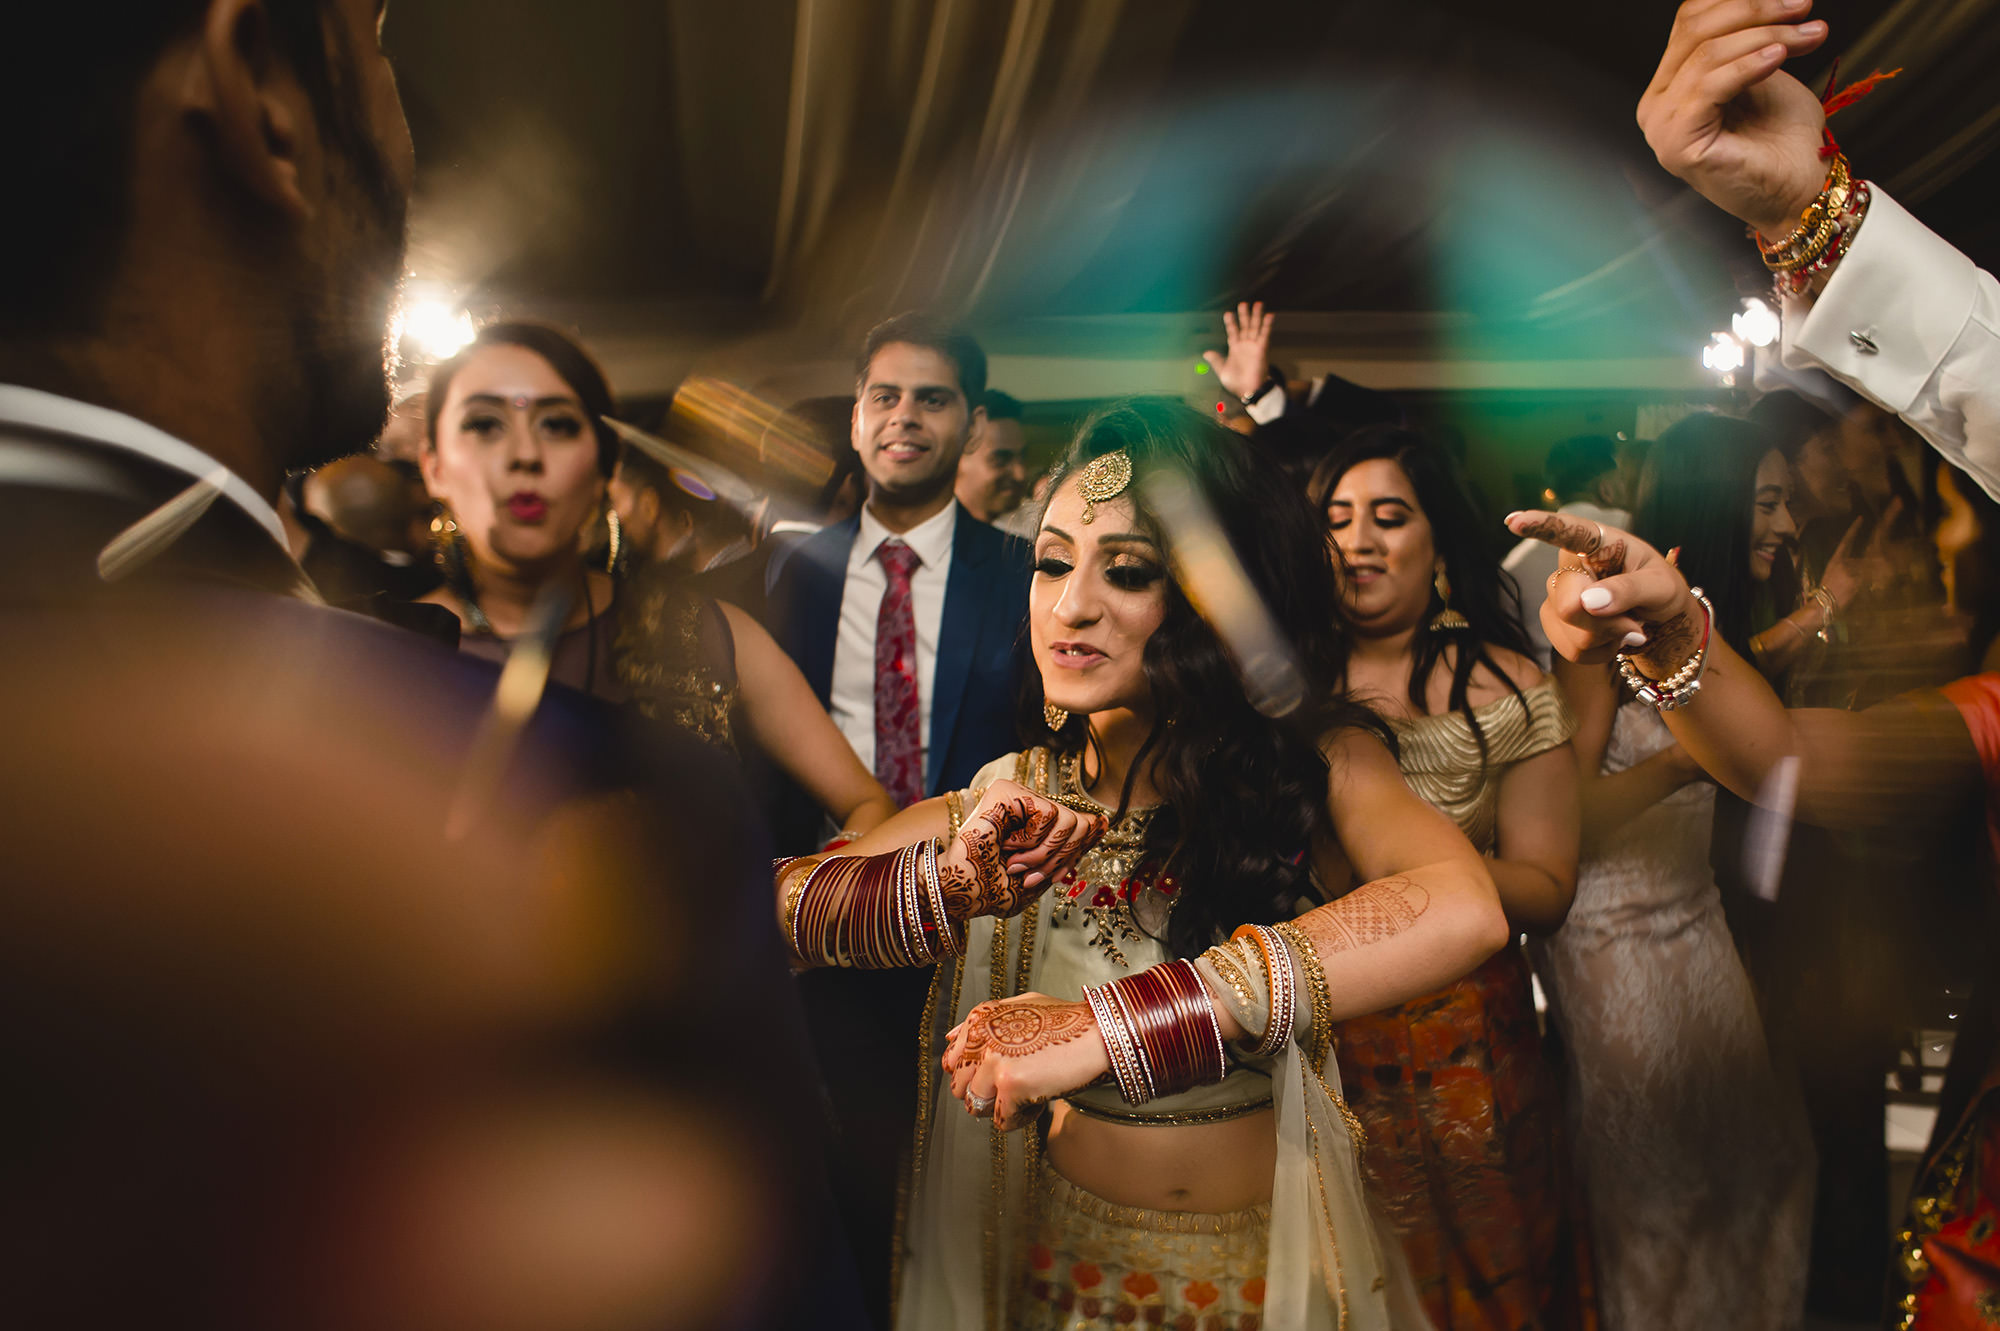 bride dancing with friends at wedding reception